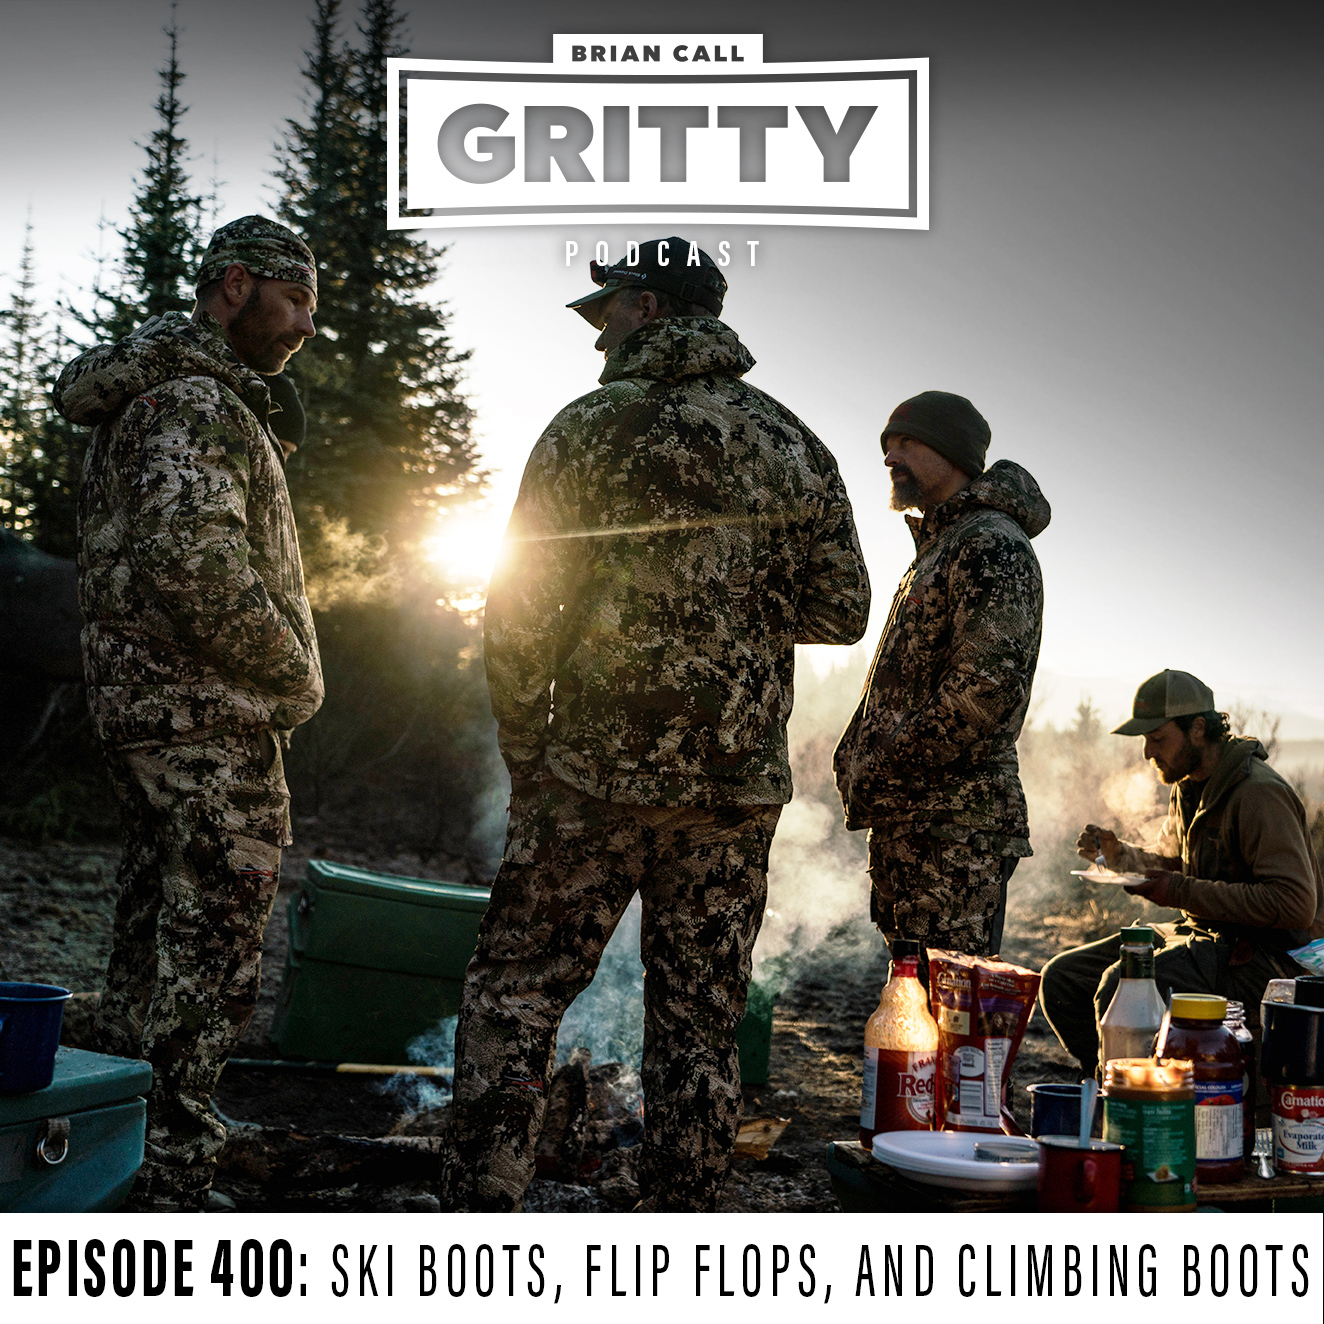 EPISODE 400: SKI BOOTS, FLIP FLOPS, AND CLIMBING SHOES WITH JAY BEYER